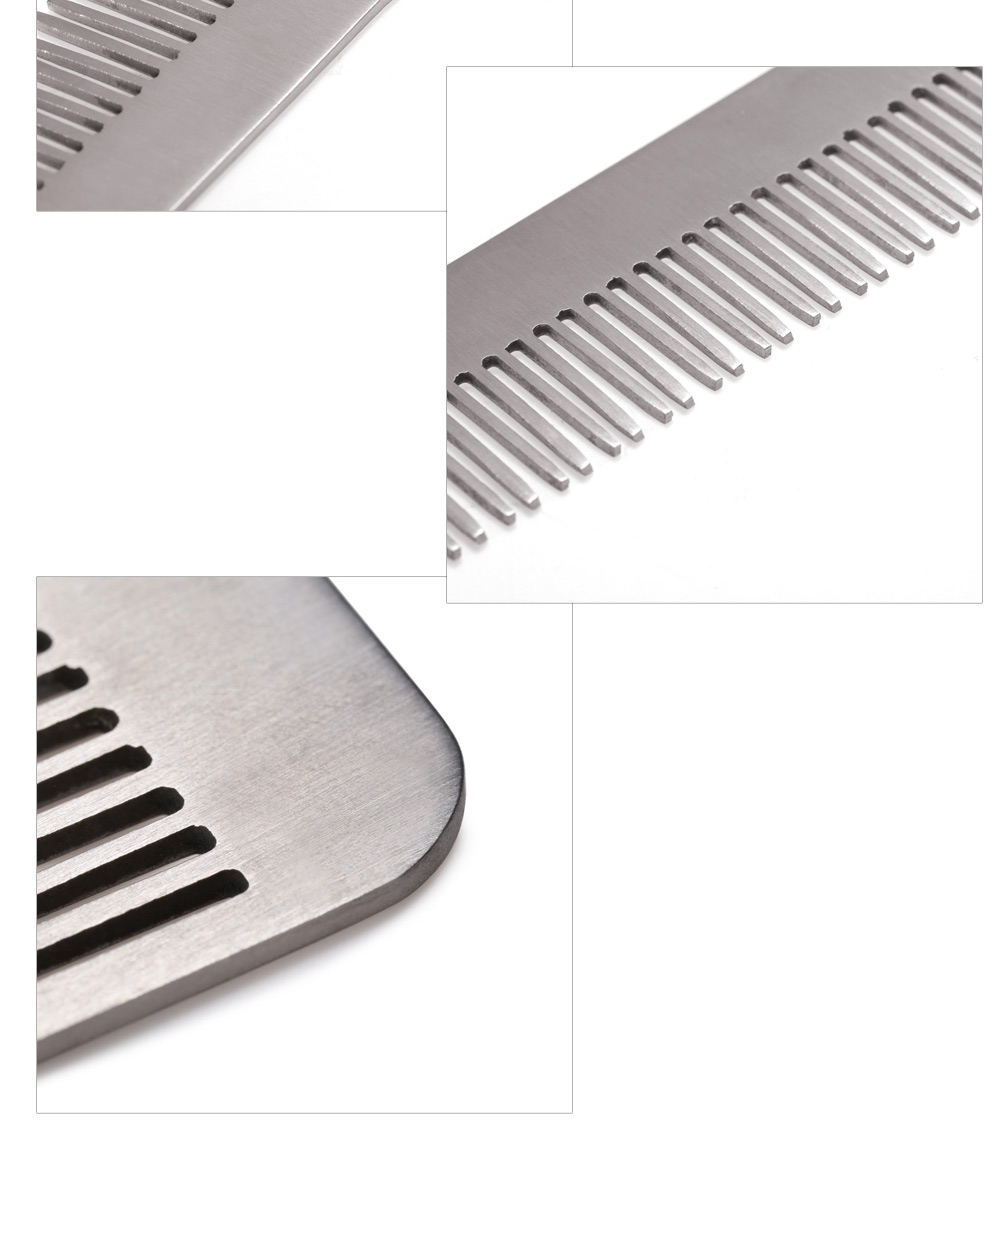 FURA Anti-static 5Cr13Mov Stainless Steel Comb with Hanging Hole